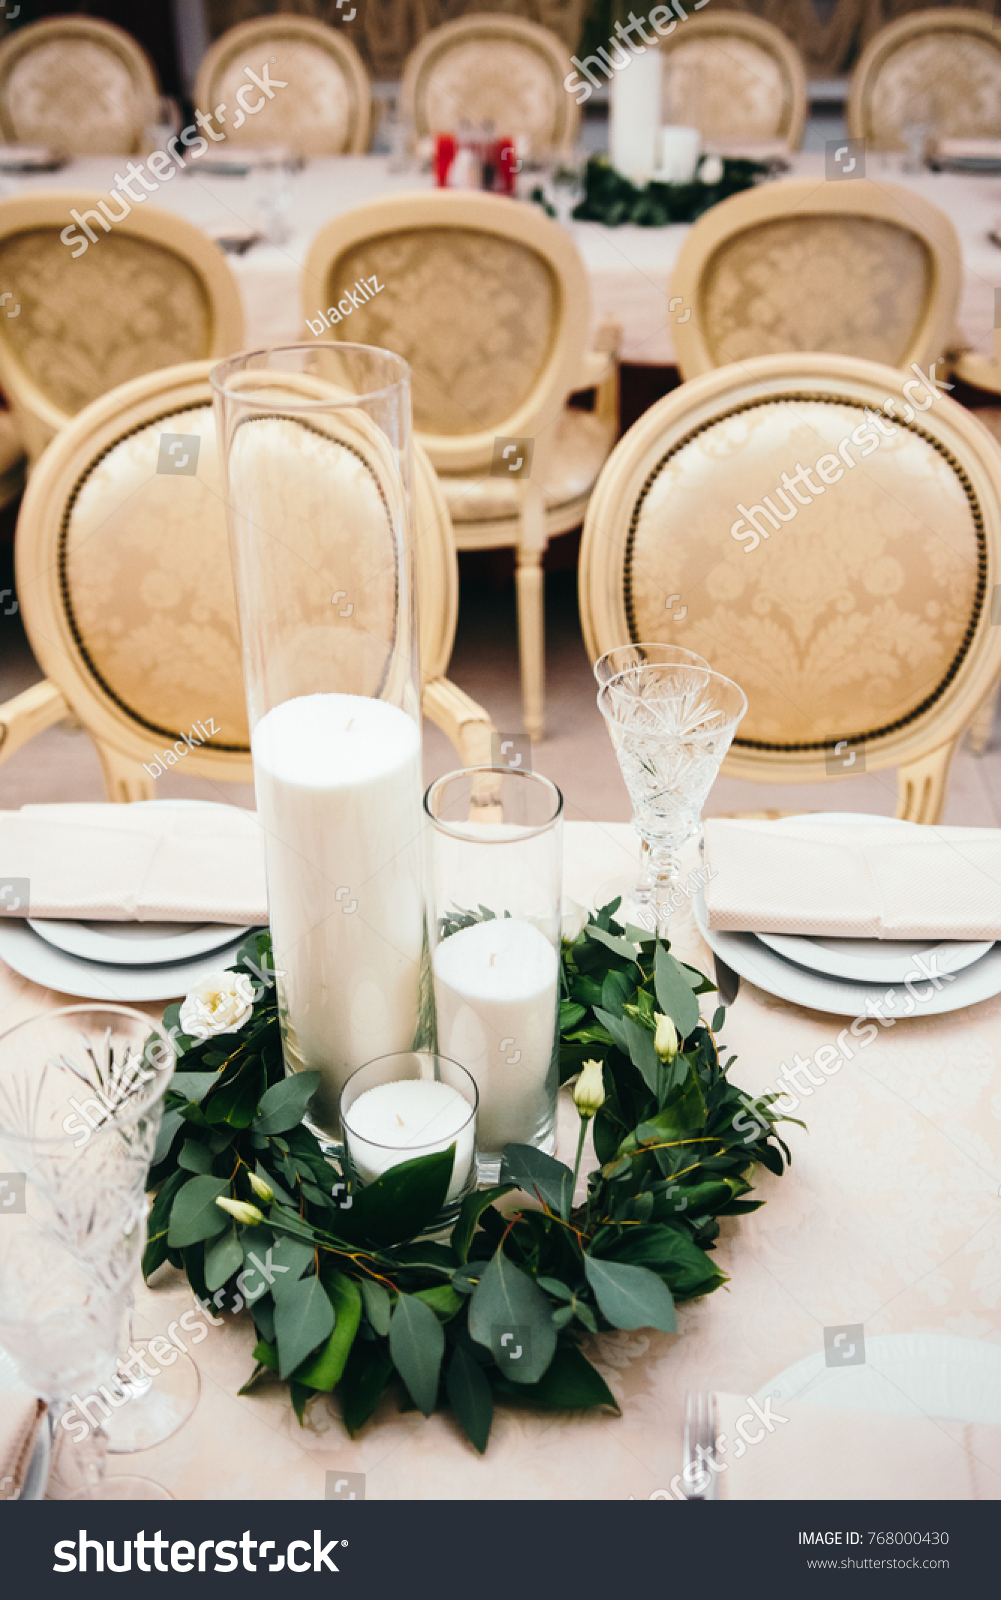 Wedding Table Decorations White Candles Greenery Stock Photo Edit